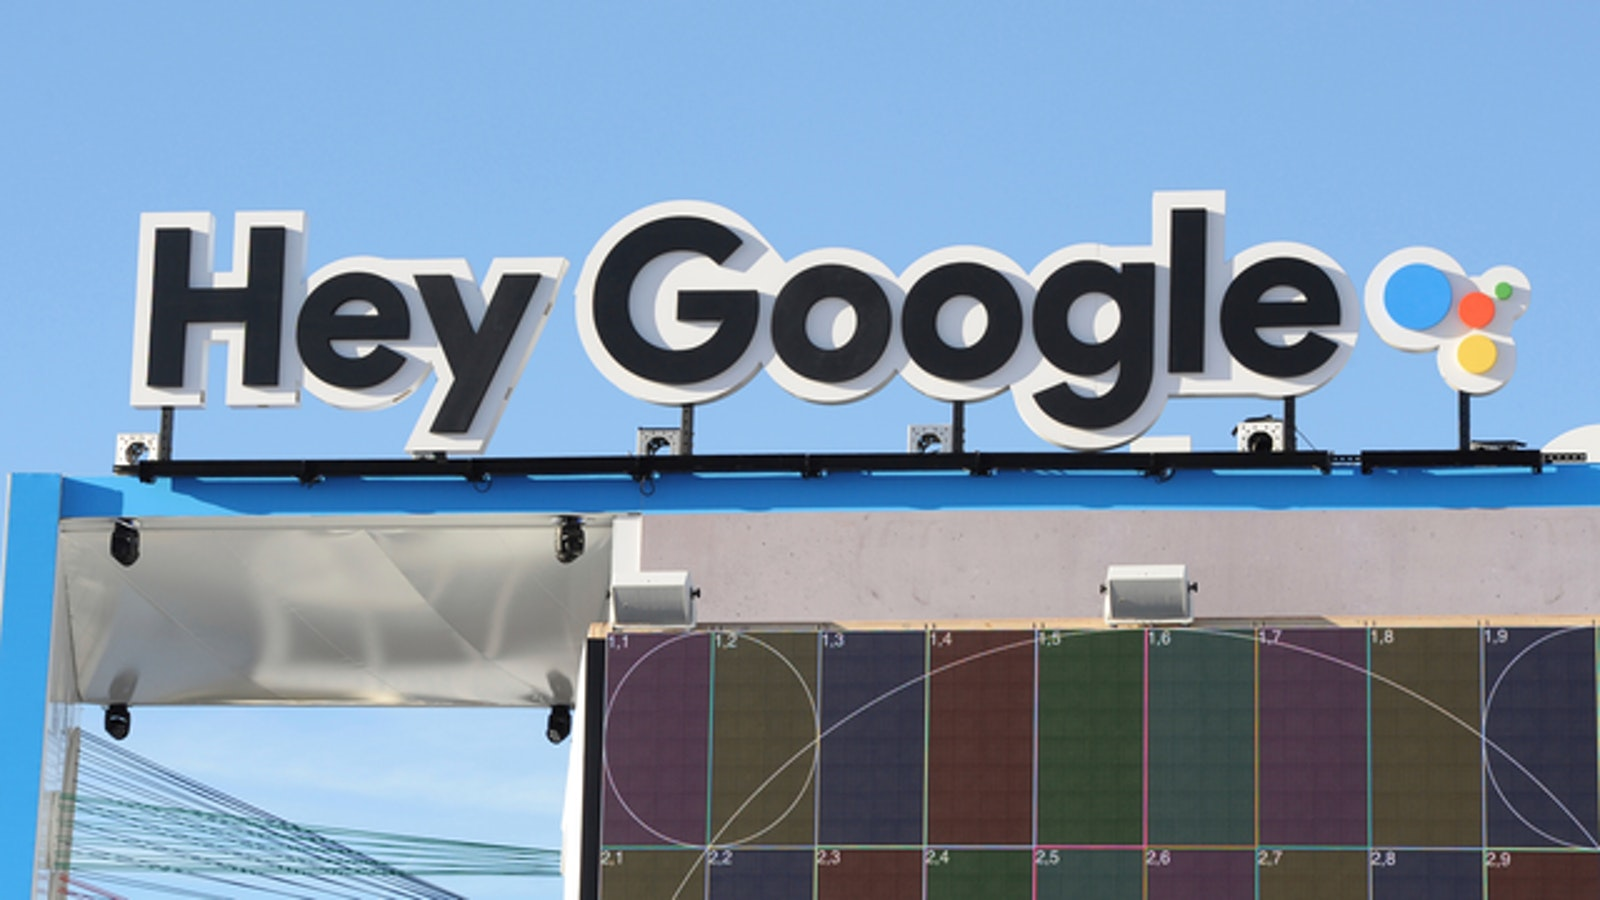 Google's pavilion at CES this week. Photo by AP